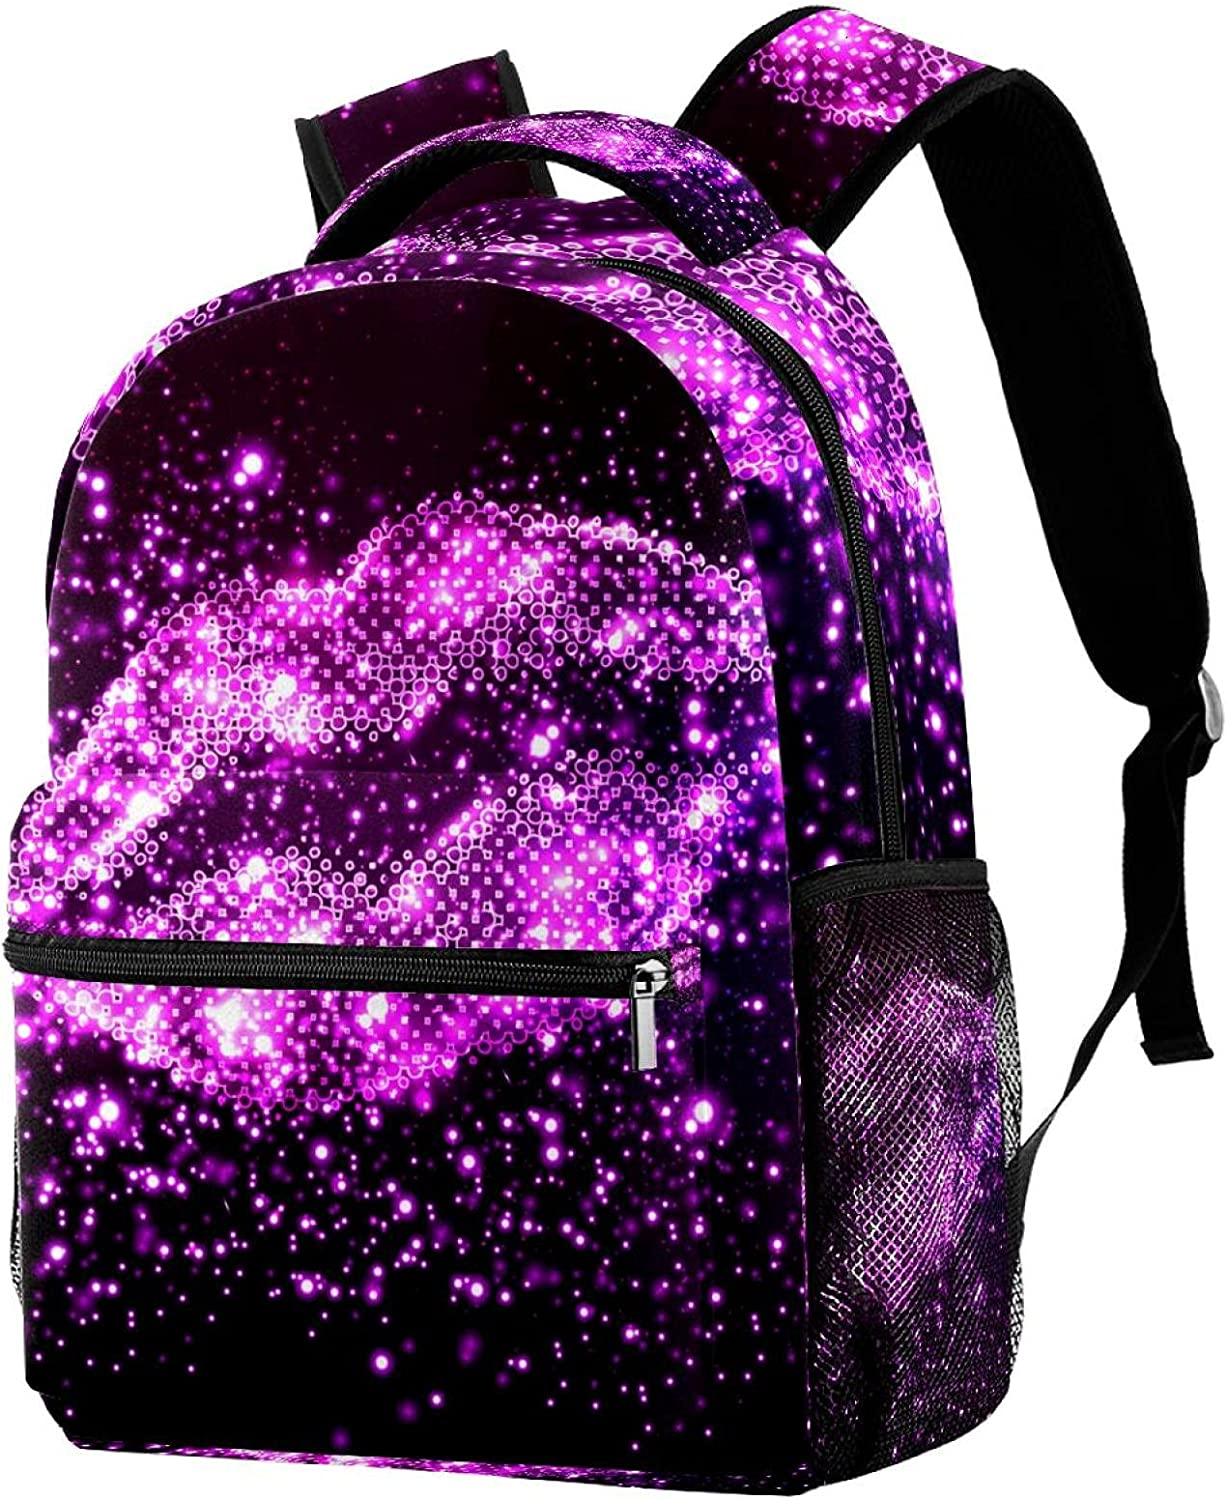 Fashion Small Backpack for Max 48% OFF Girls Boys Daypack Bag Purple Star Lip Travel